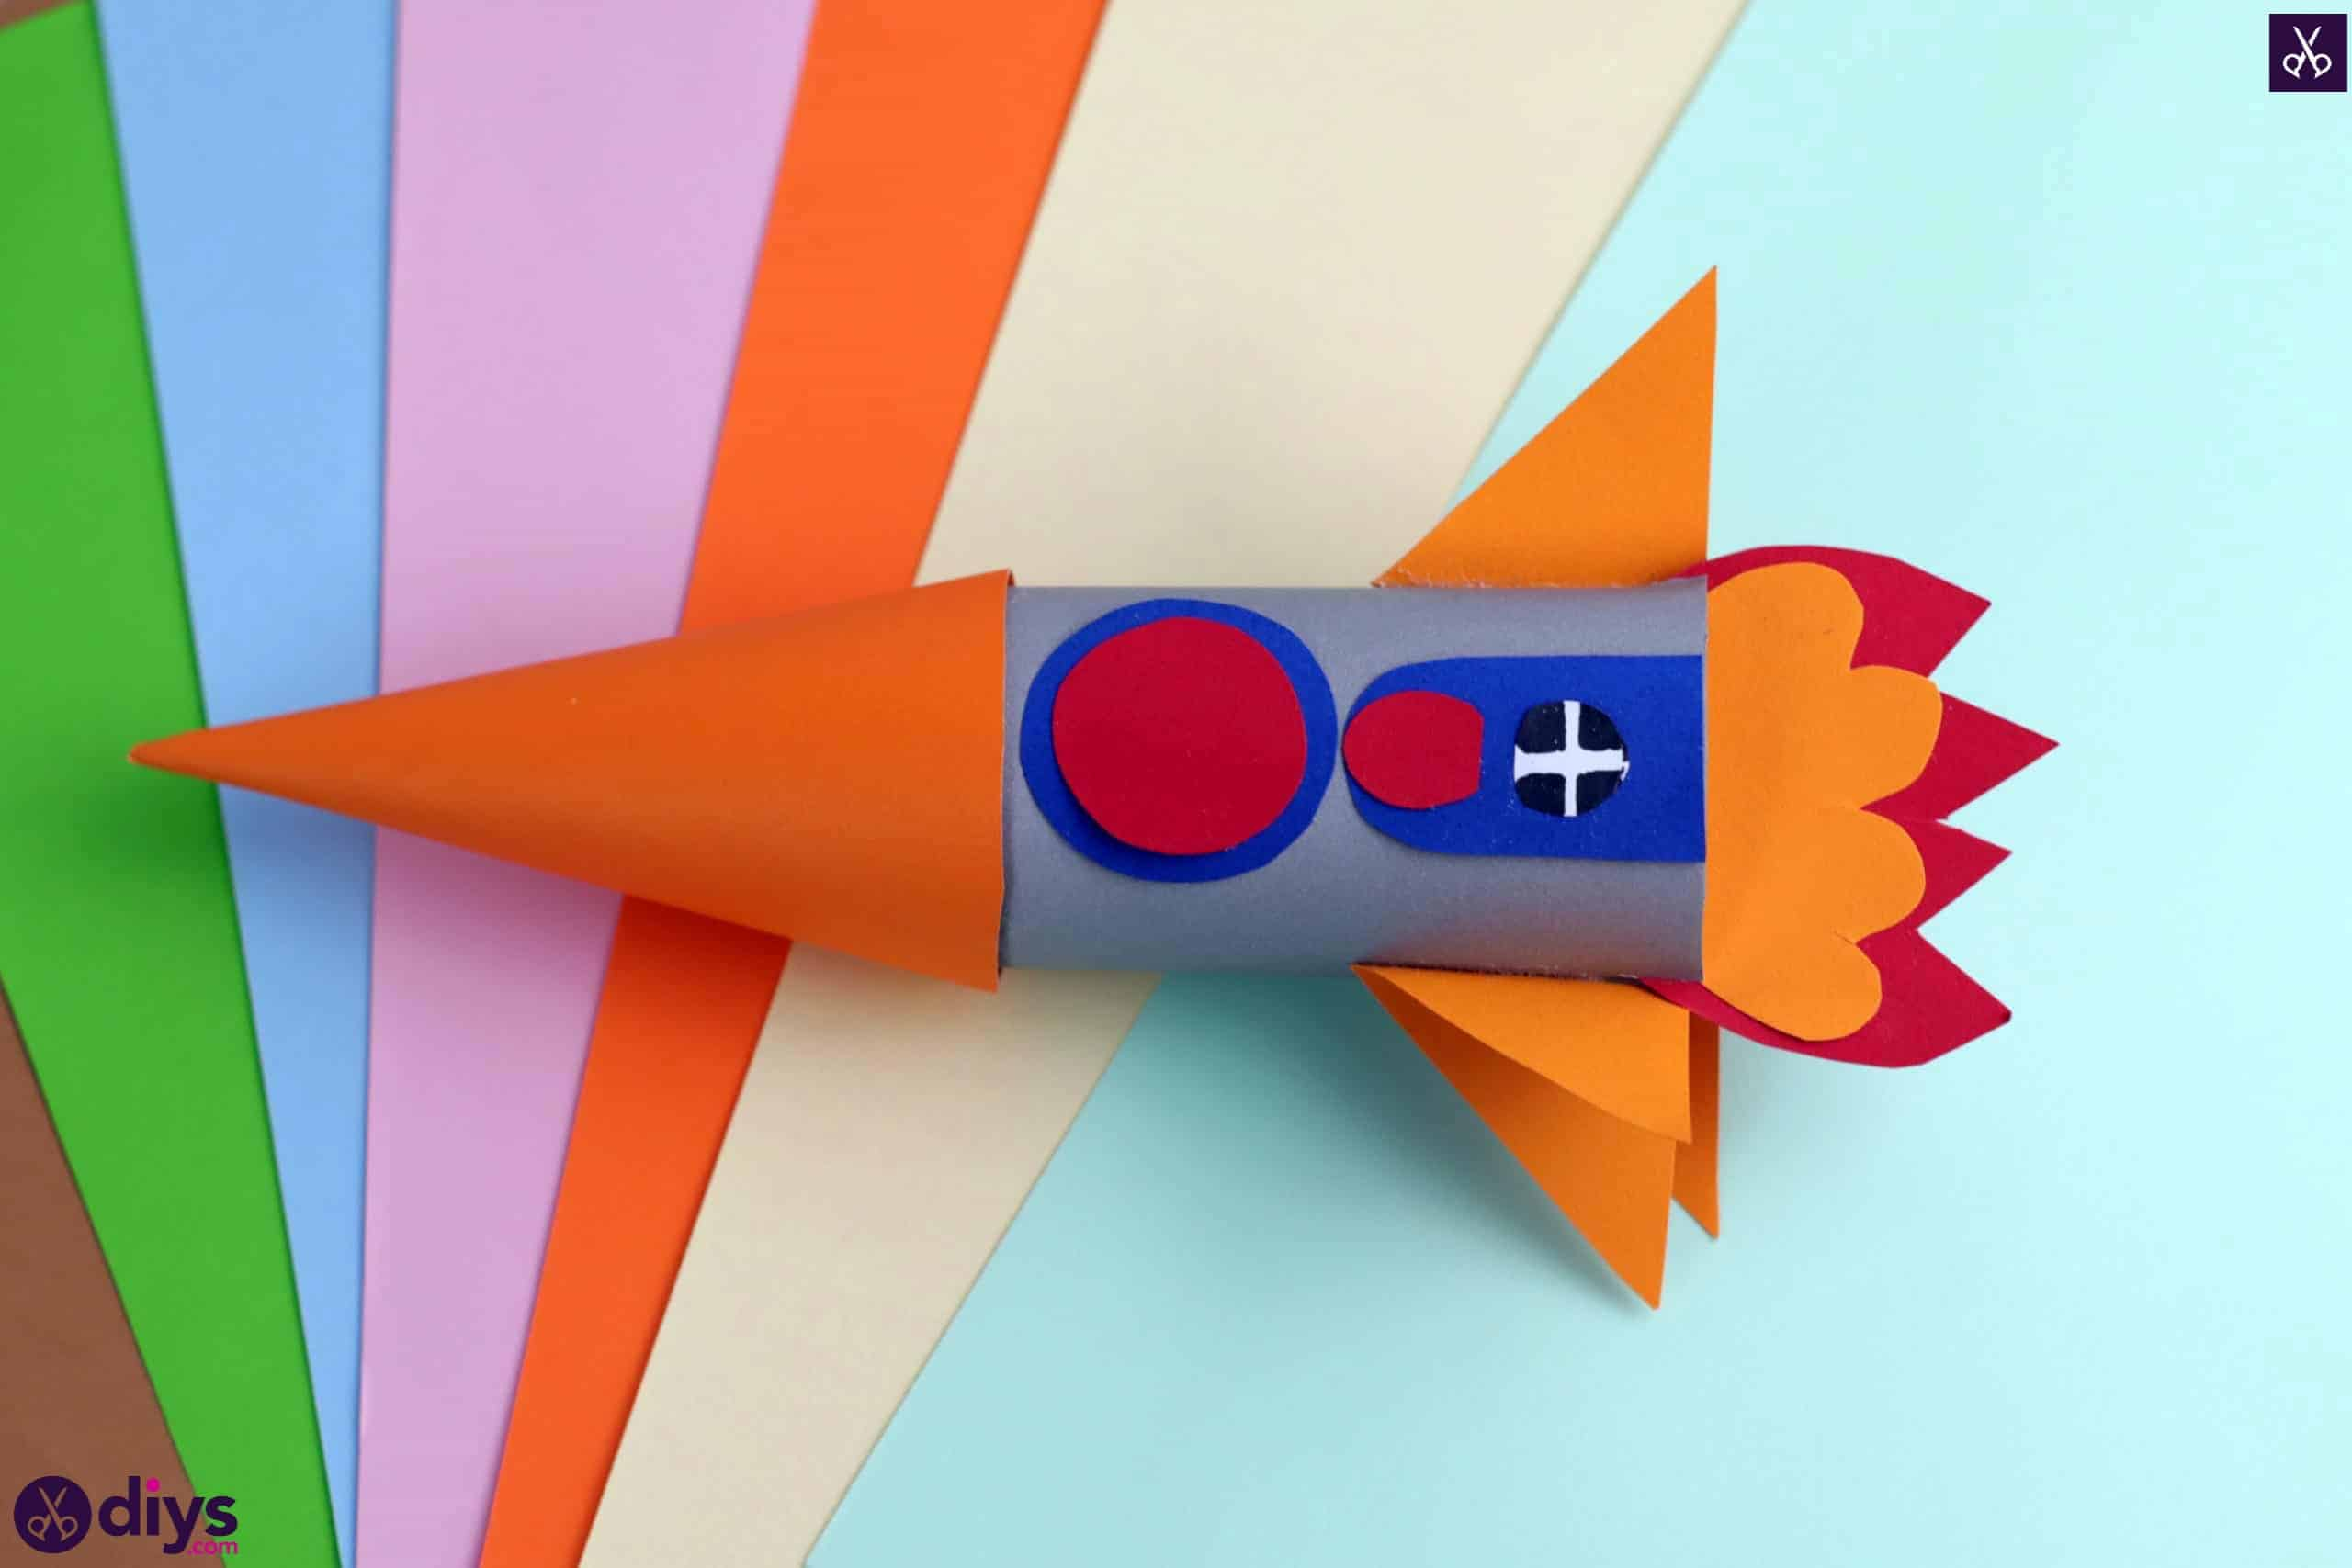 Diy toilet paper roll rocket paper craft